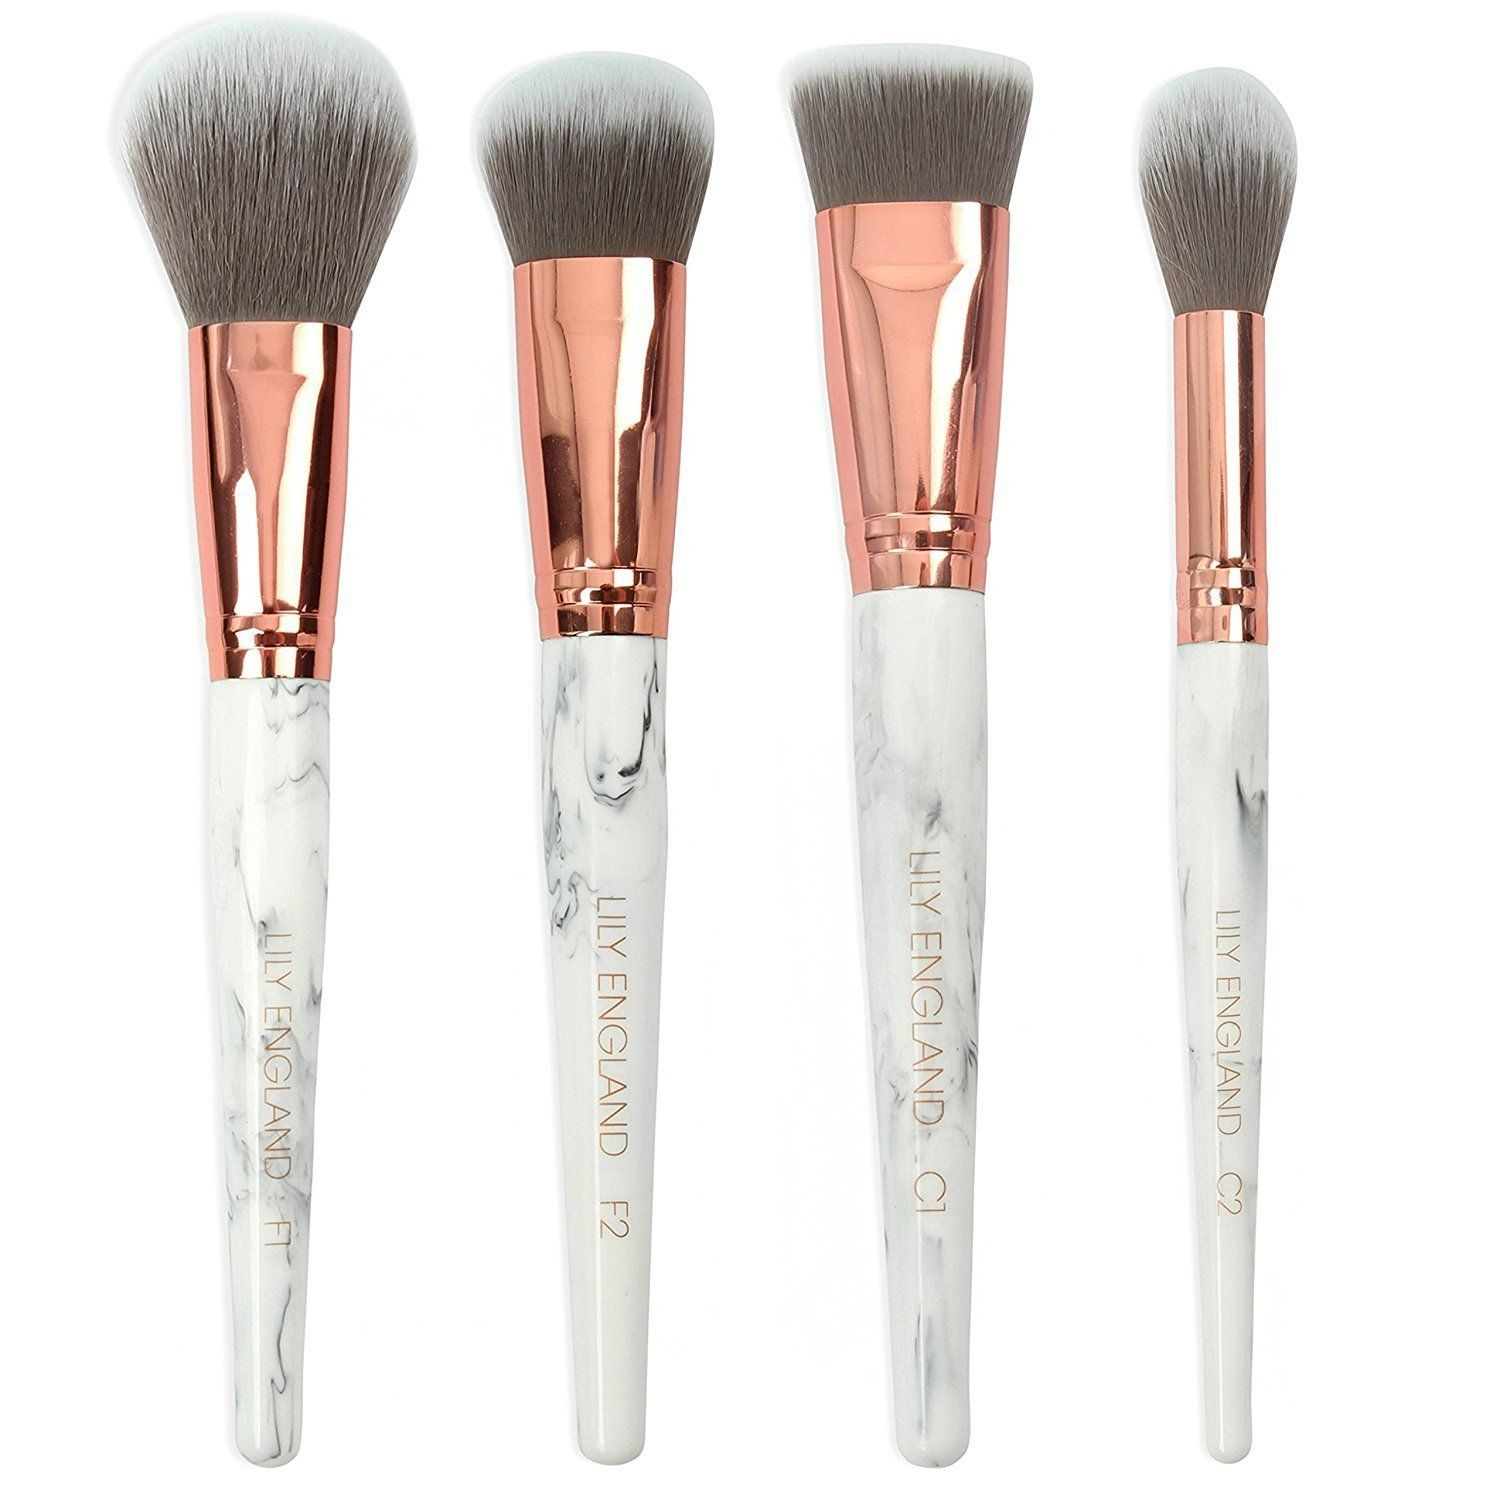 Lily England Makeup Brush Set Powder, Foundation